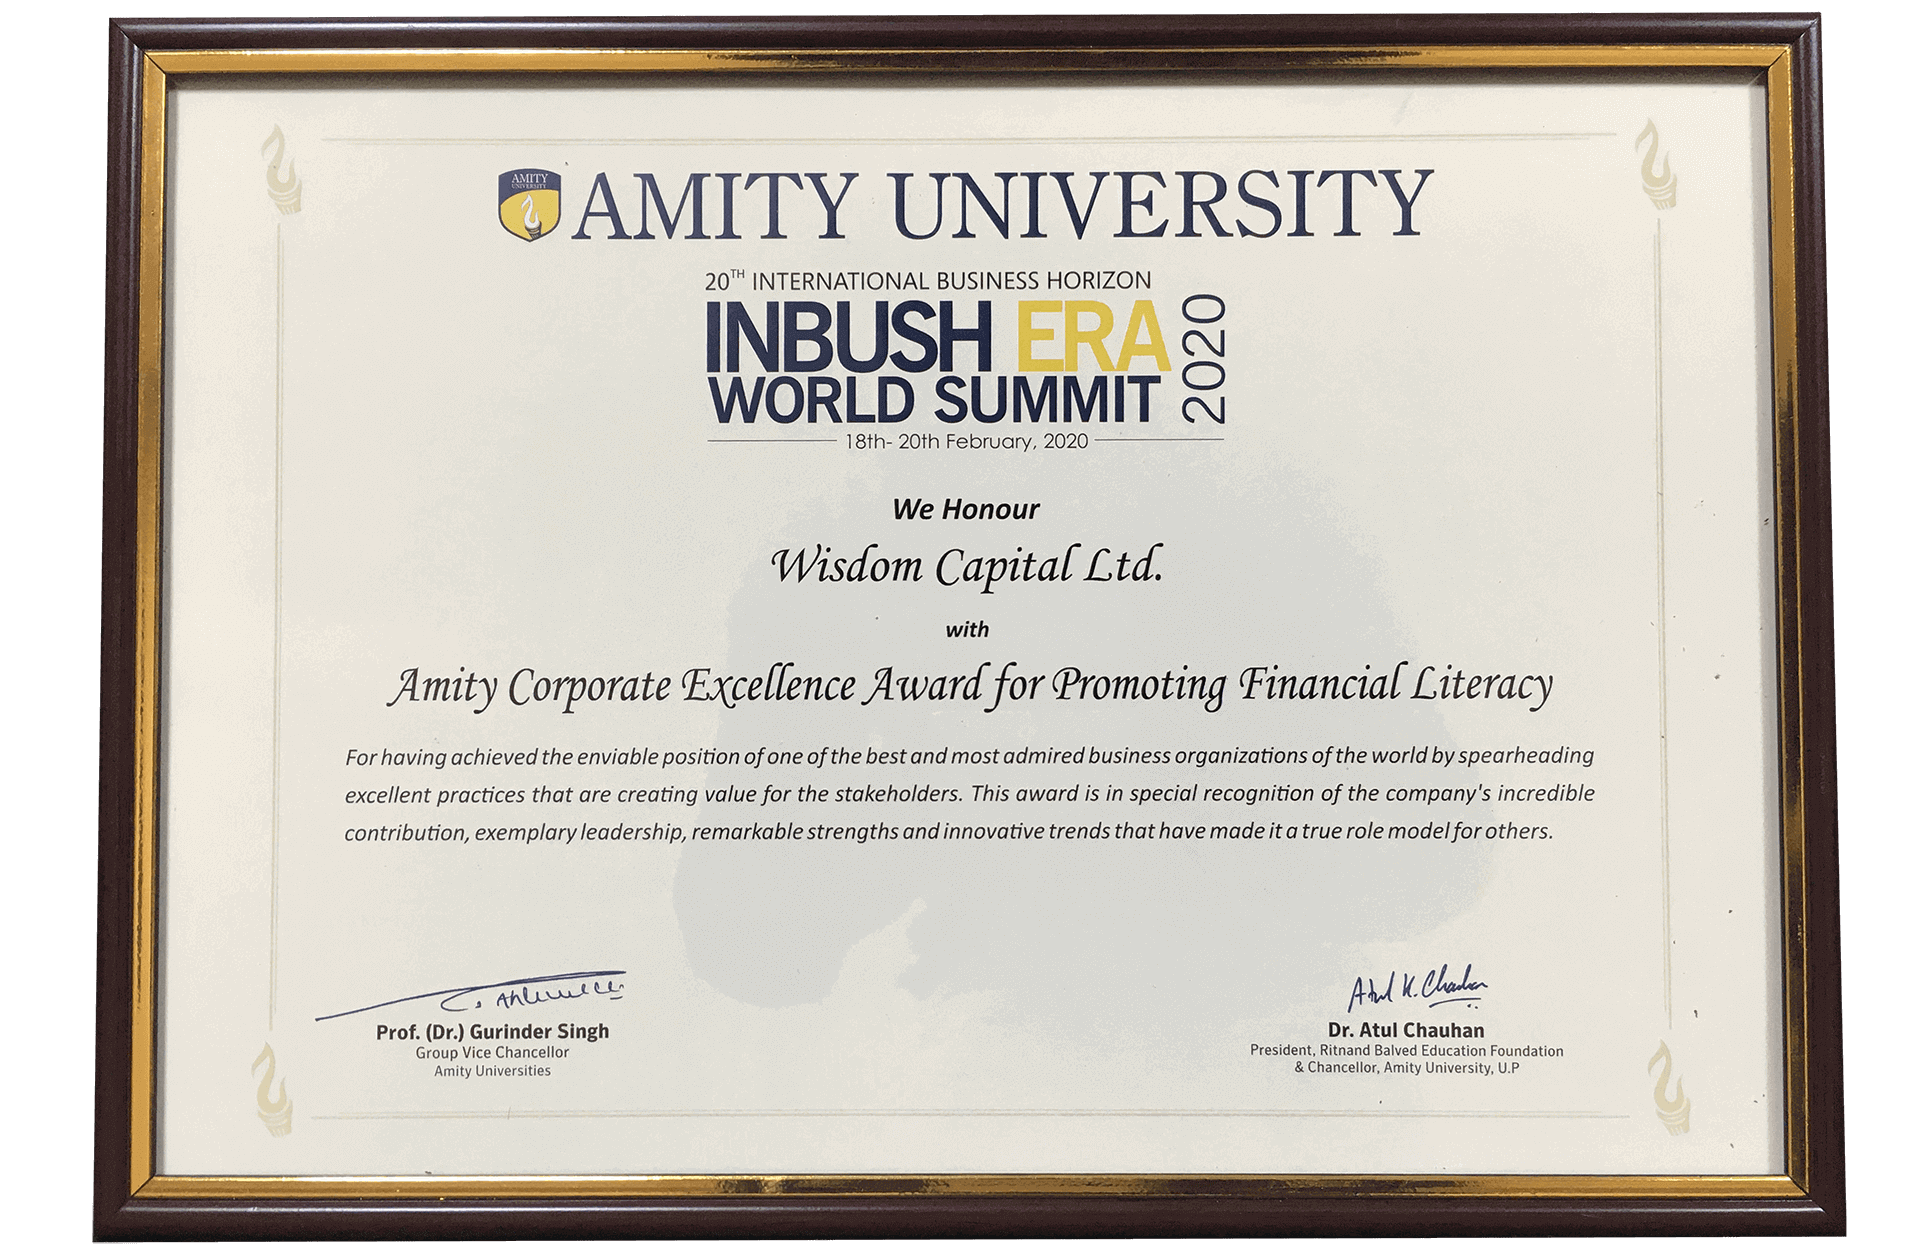 Amity Corporate Excellence Award for promoting Financial Literacy